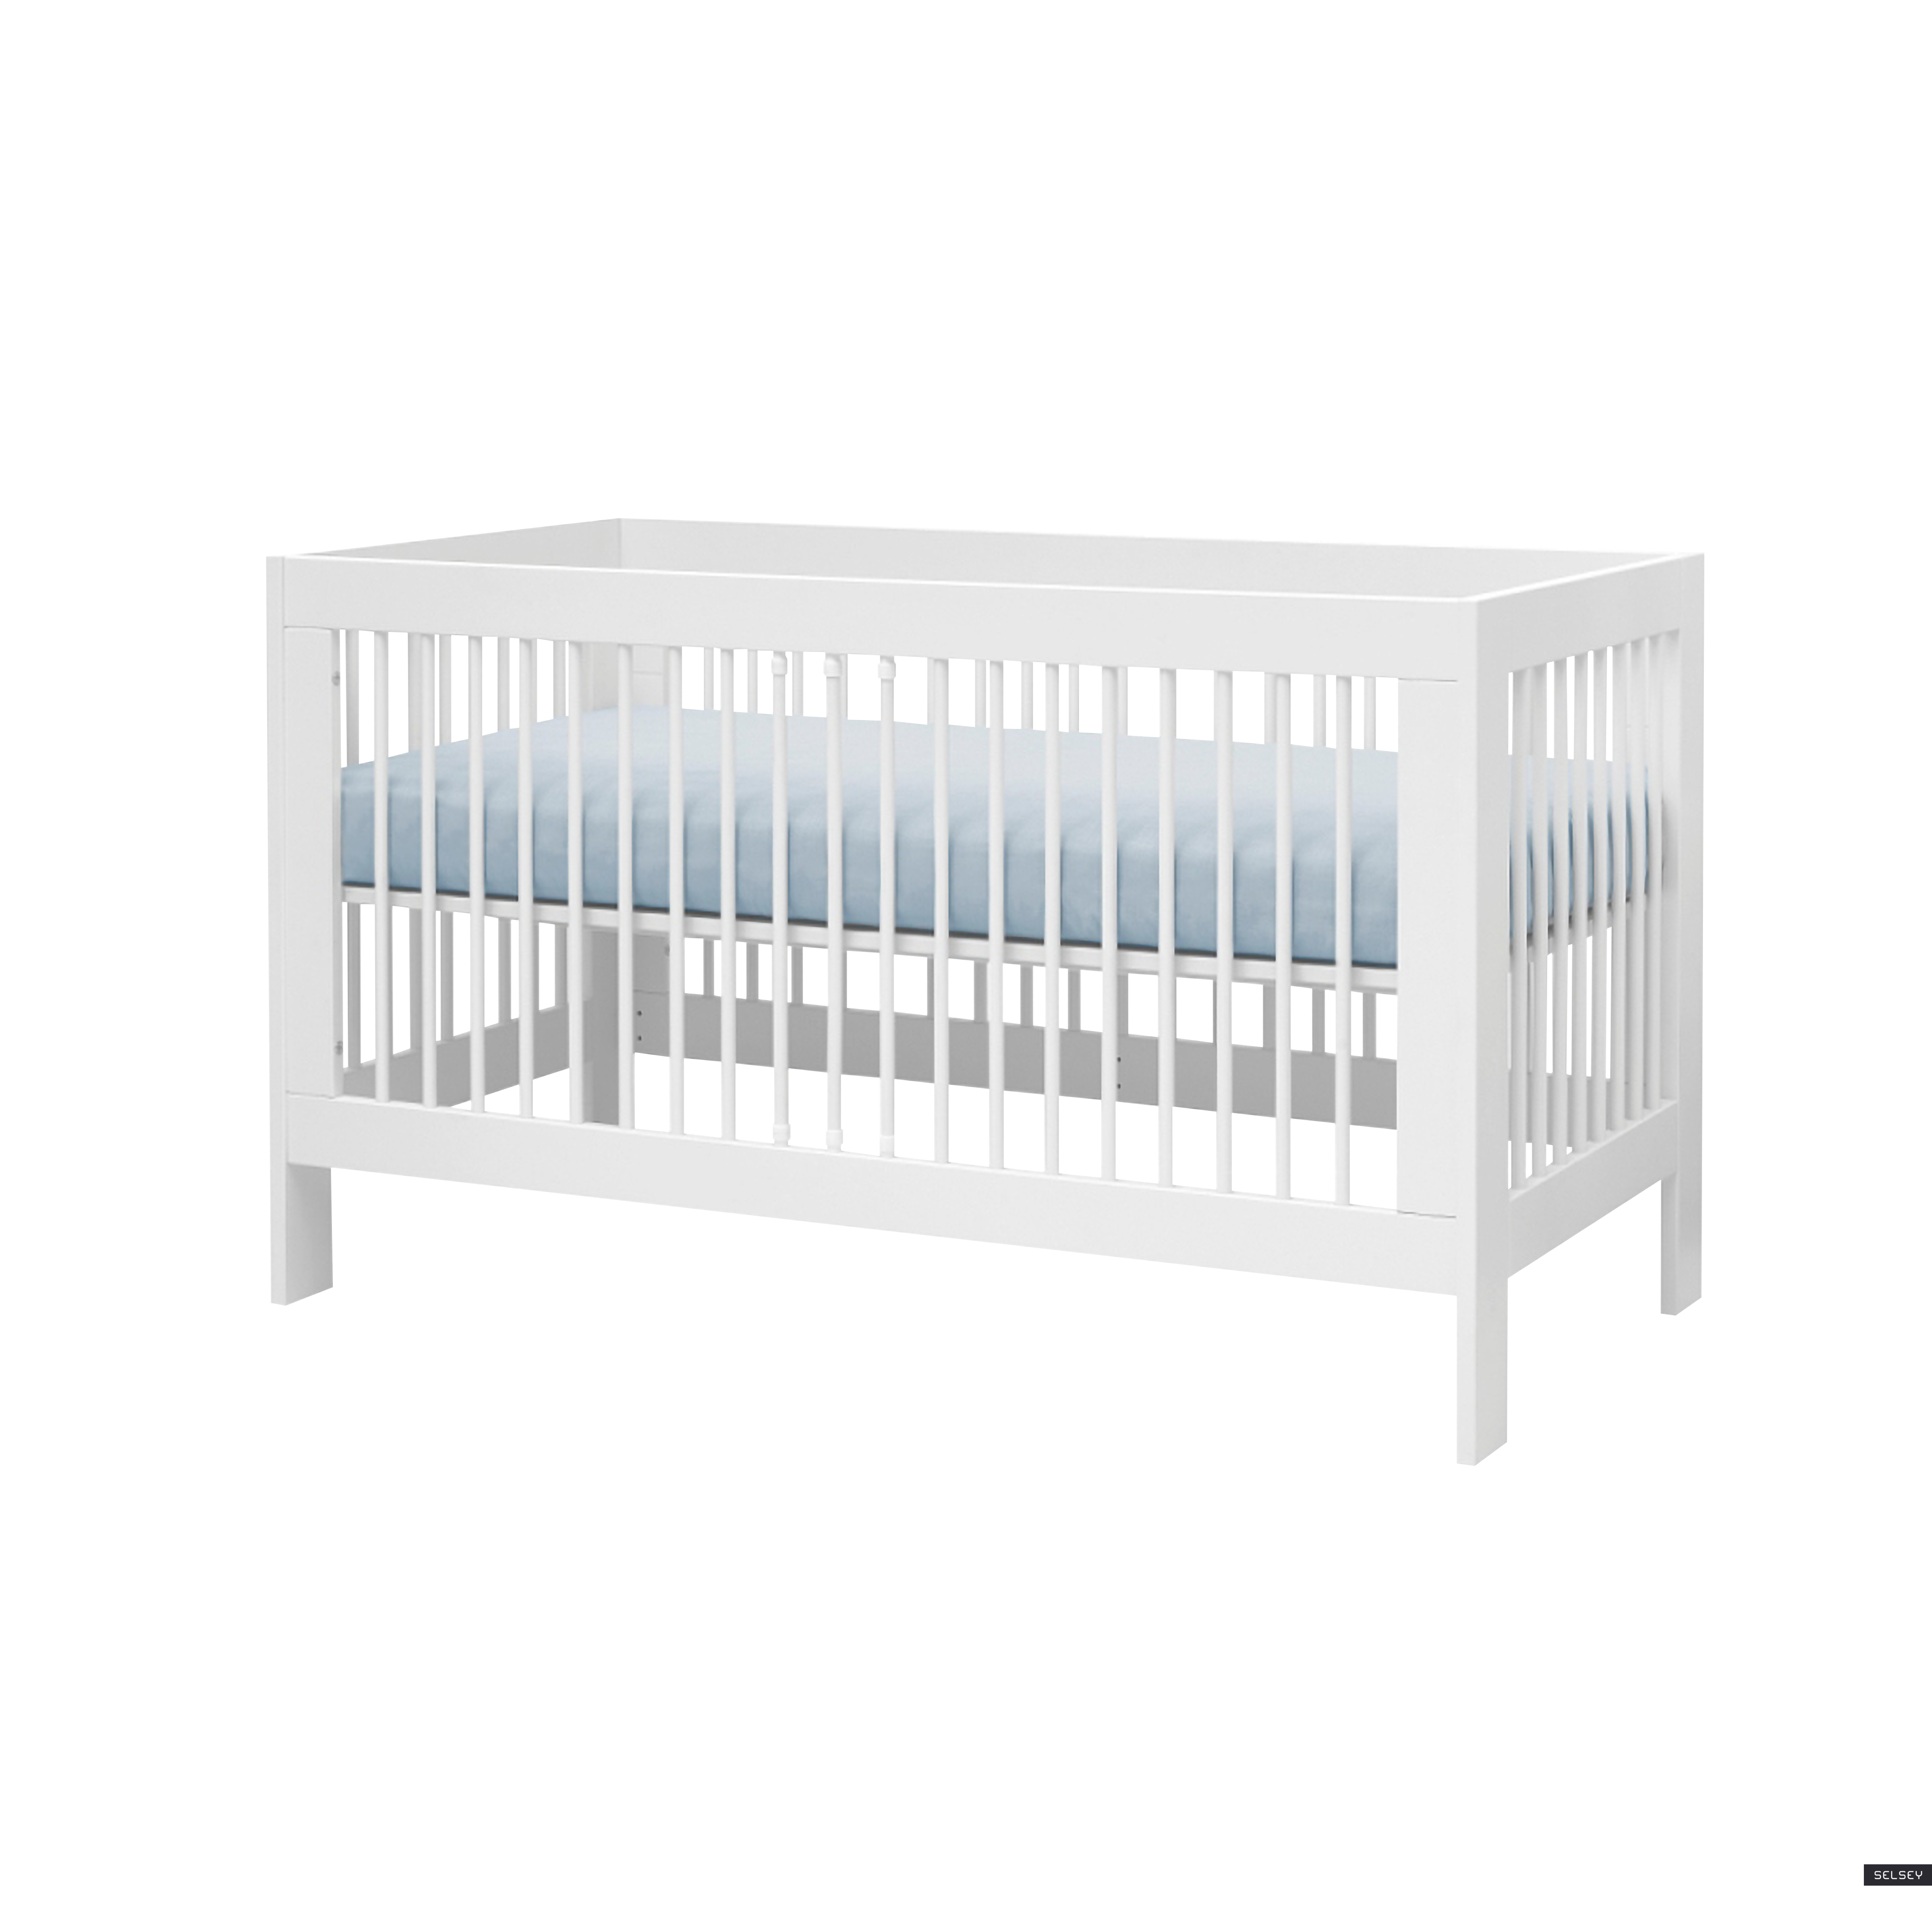 Basic Cot Bed 140 x 70 cm